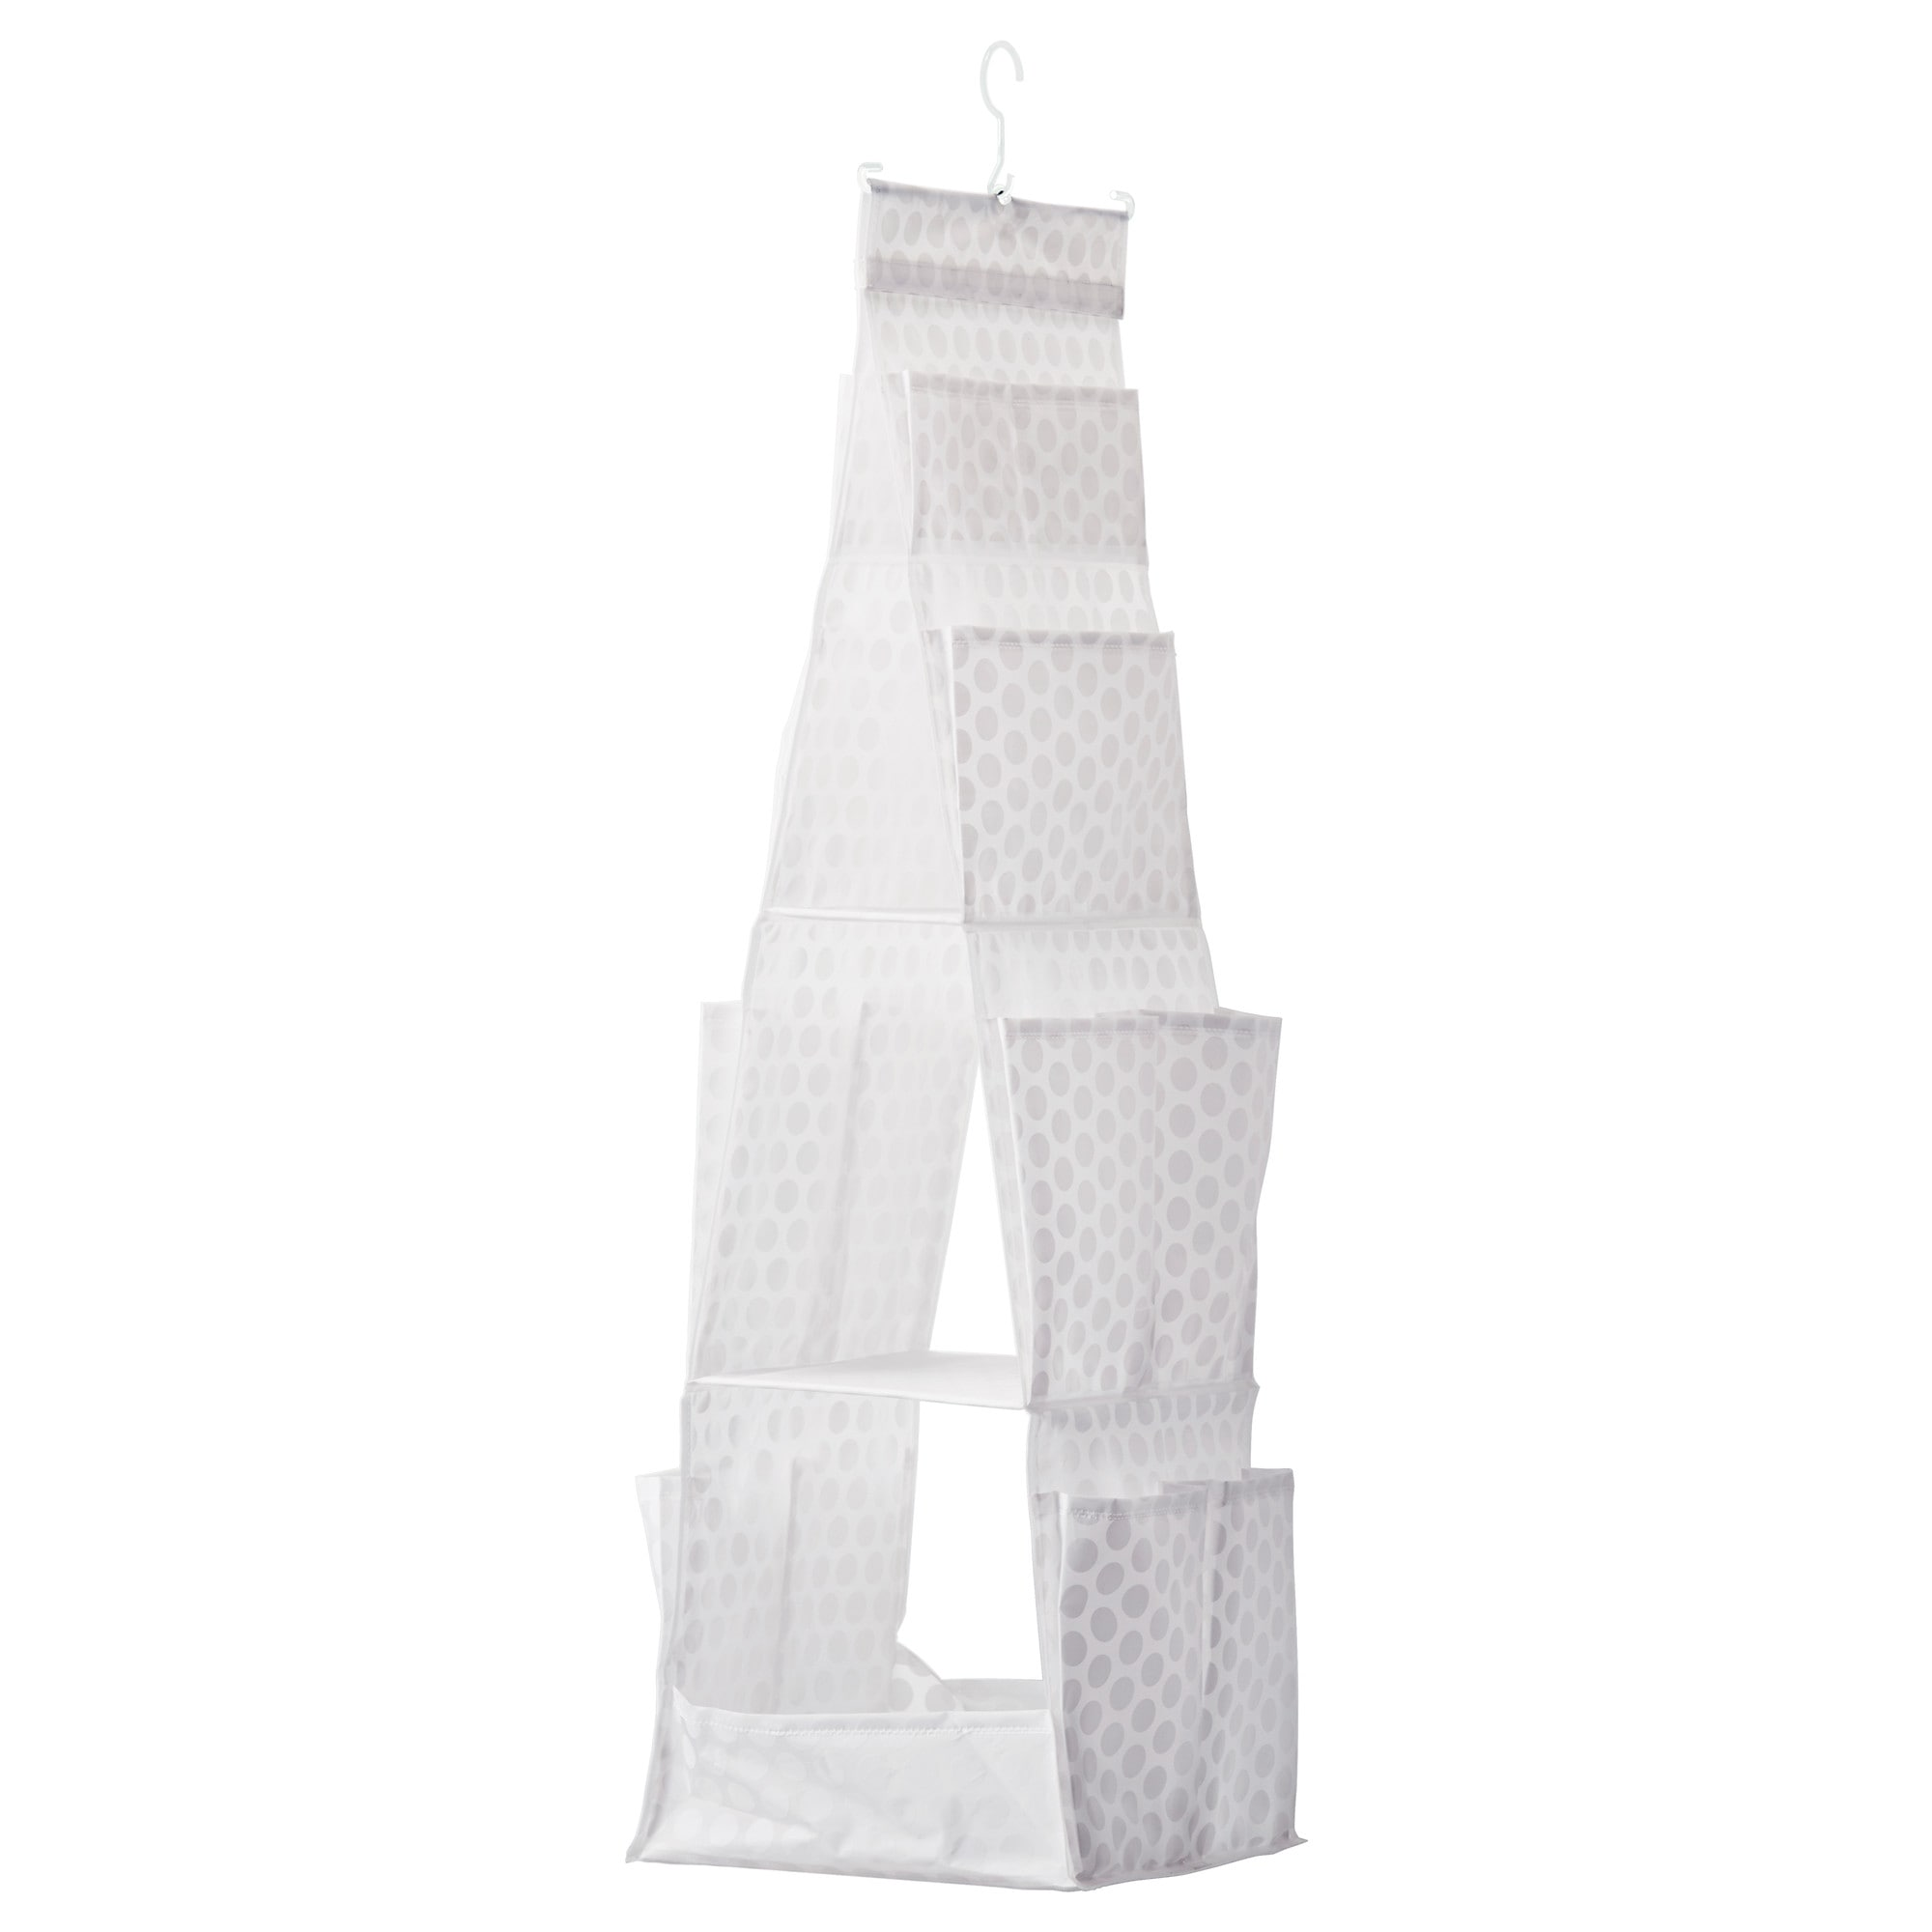 PLURING hanging storage with 3 compartments  white Height including hanger   41     Width. Clothes Organizers   Storage   IKEA